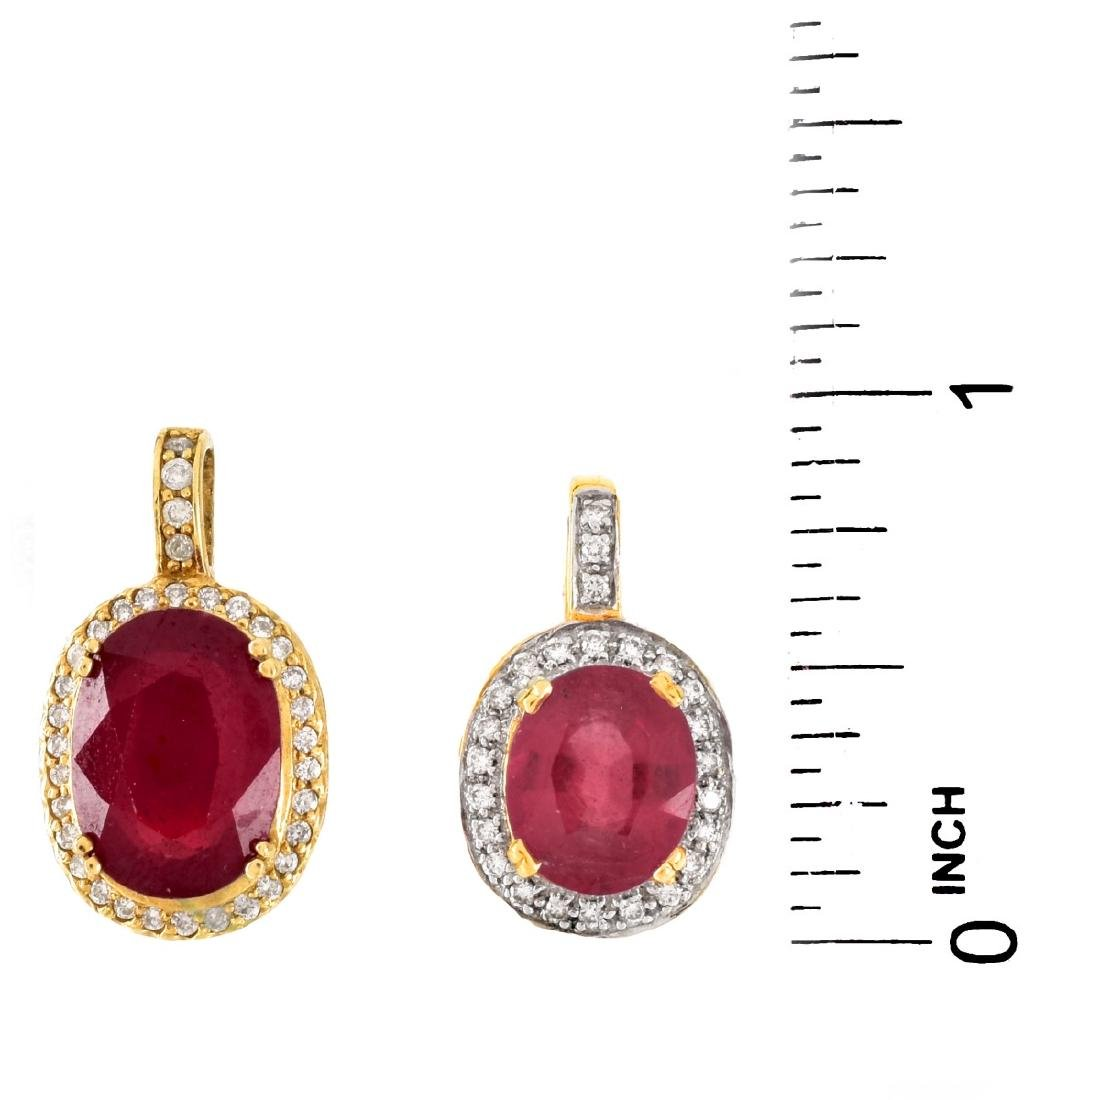 Two Gemstone and Gold Pendants - 4